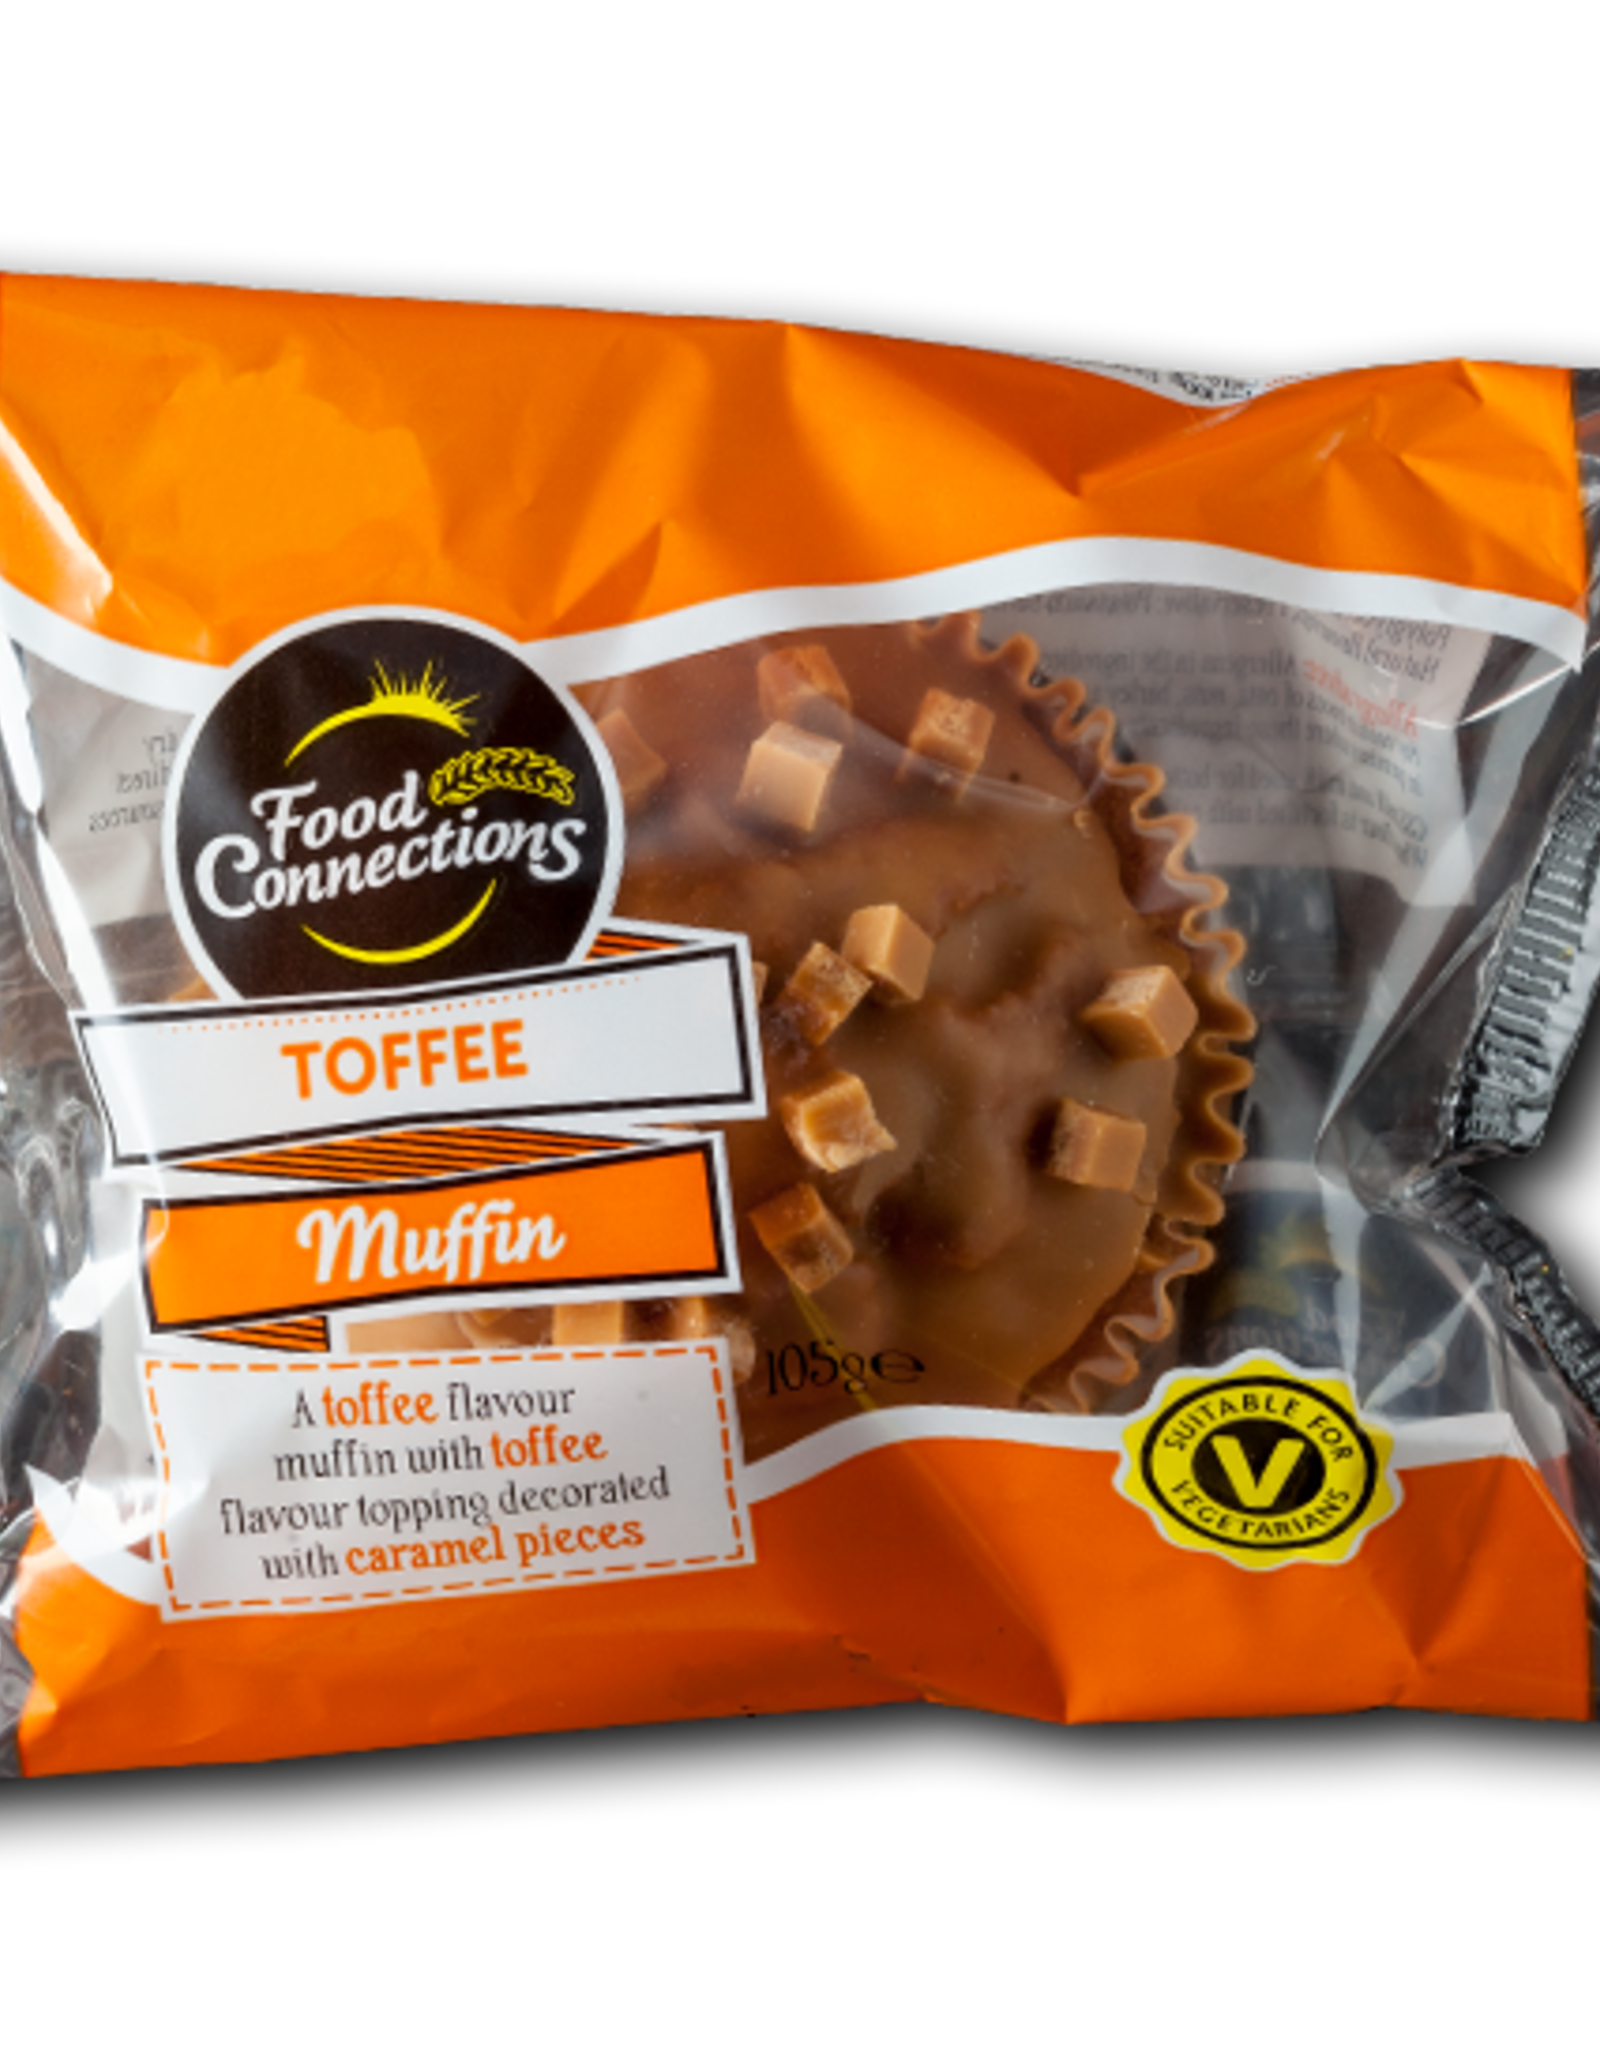 Food Connections Toffee Muffin